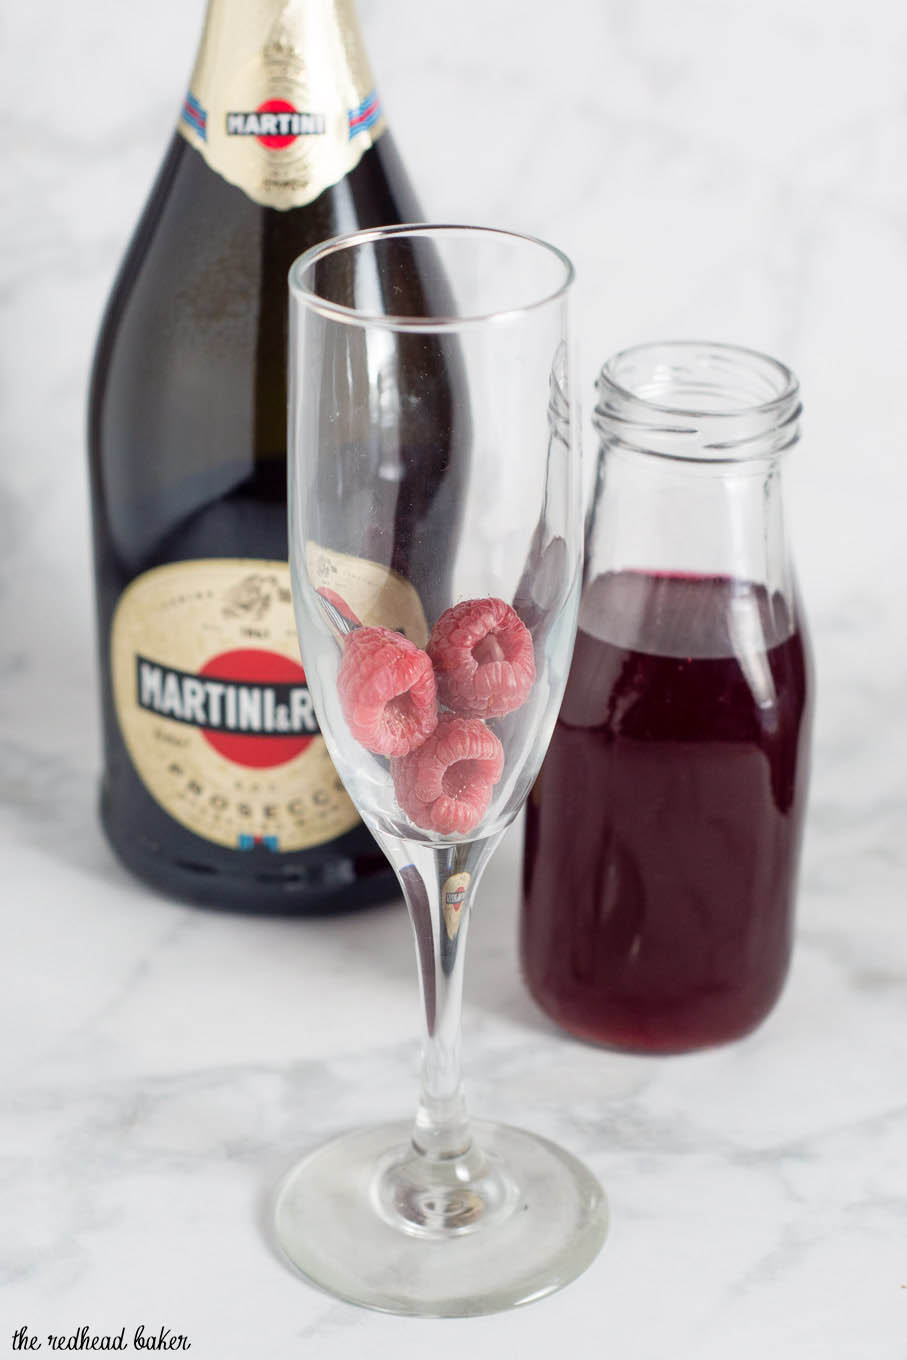 A raspberry bellini combines prosecco with sweetened berry-infused vodka, which gives the cocktail its beautiful pink hue.